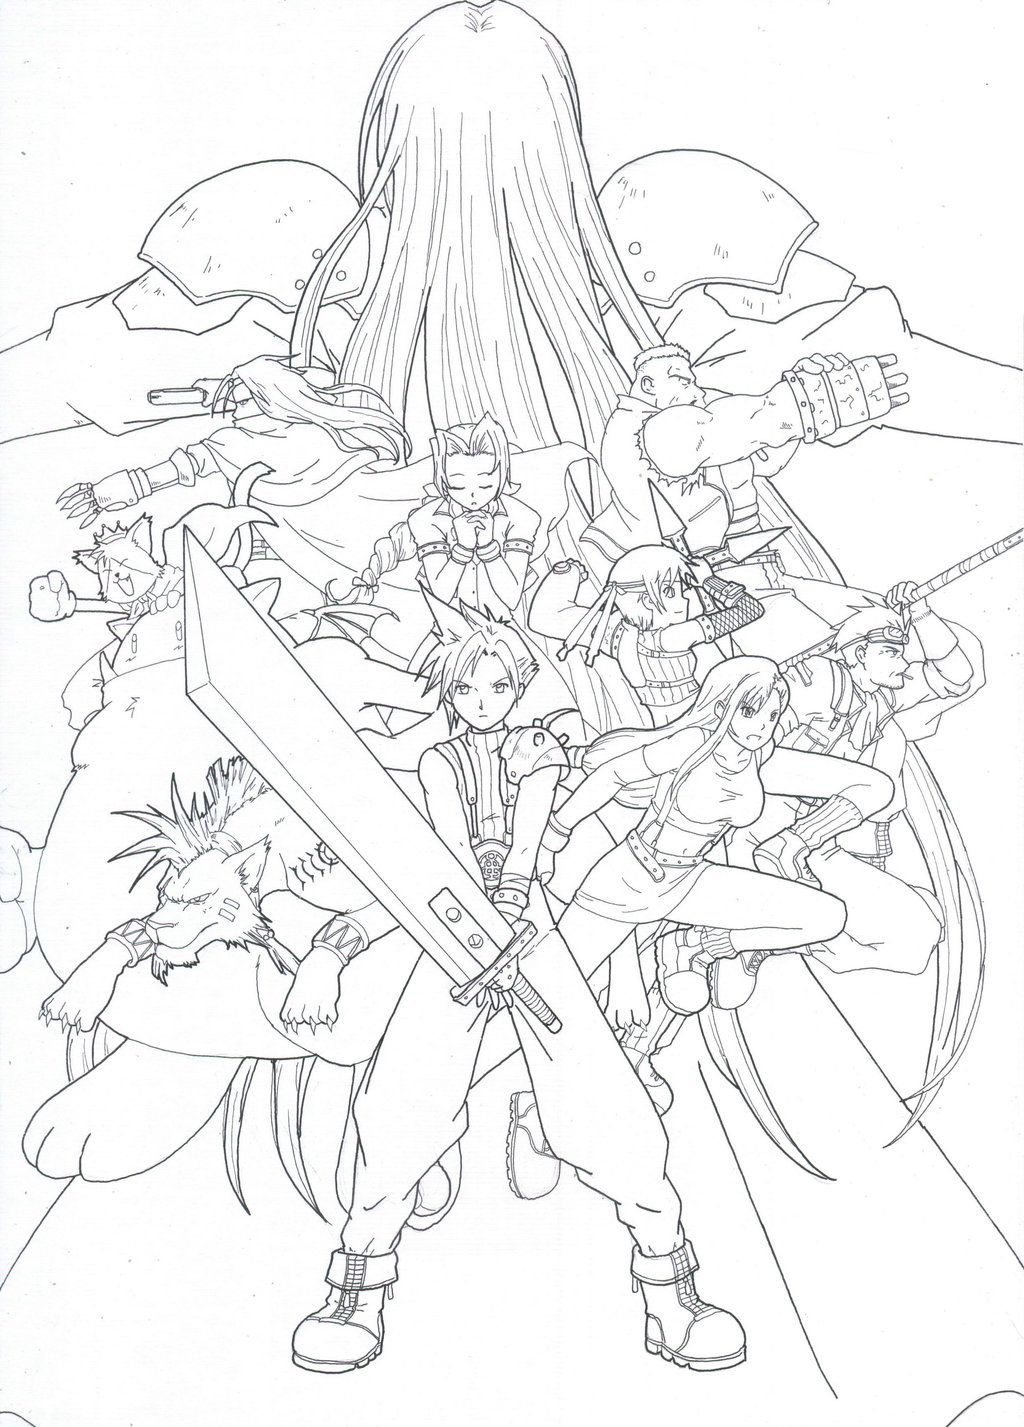 Final Fantasy 7 Fan Art Coloring Pages and Printables Download Of Sephiroth Line by Skylewolf 900—1273 Collection